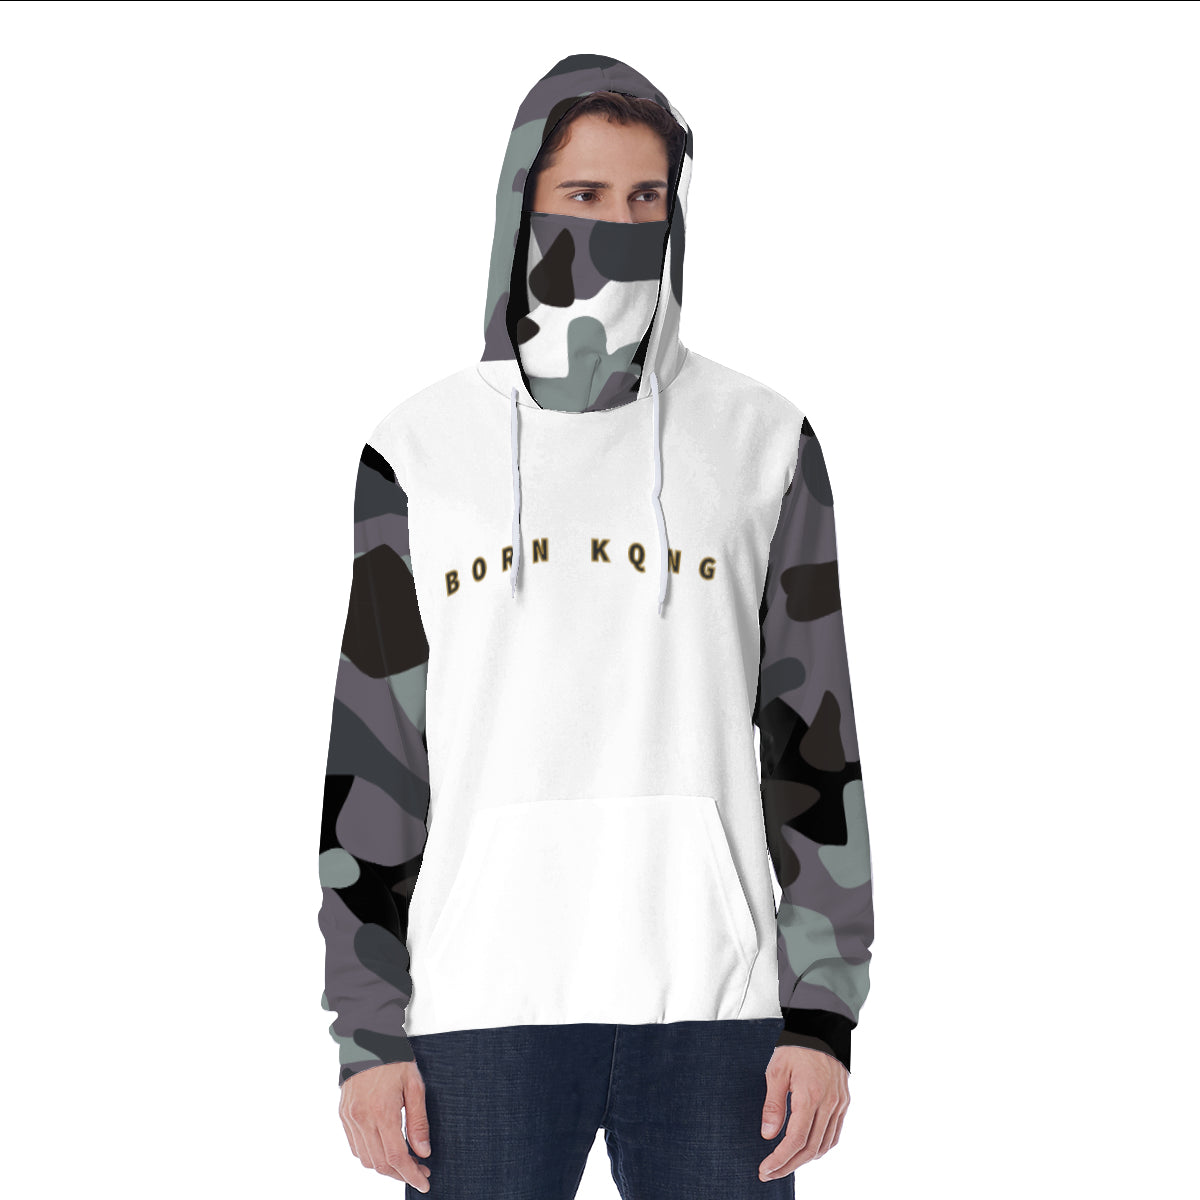 KQROWN'D APPAREL - LOGO EDITION - MEN'S MASKED HOODIE (WHITE/GRAY FATIGUE)